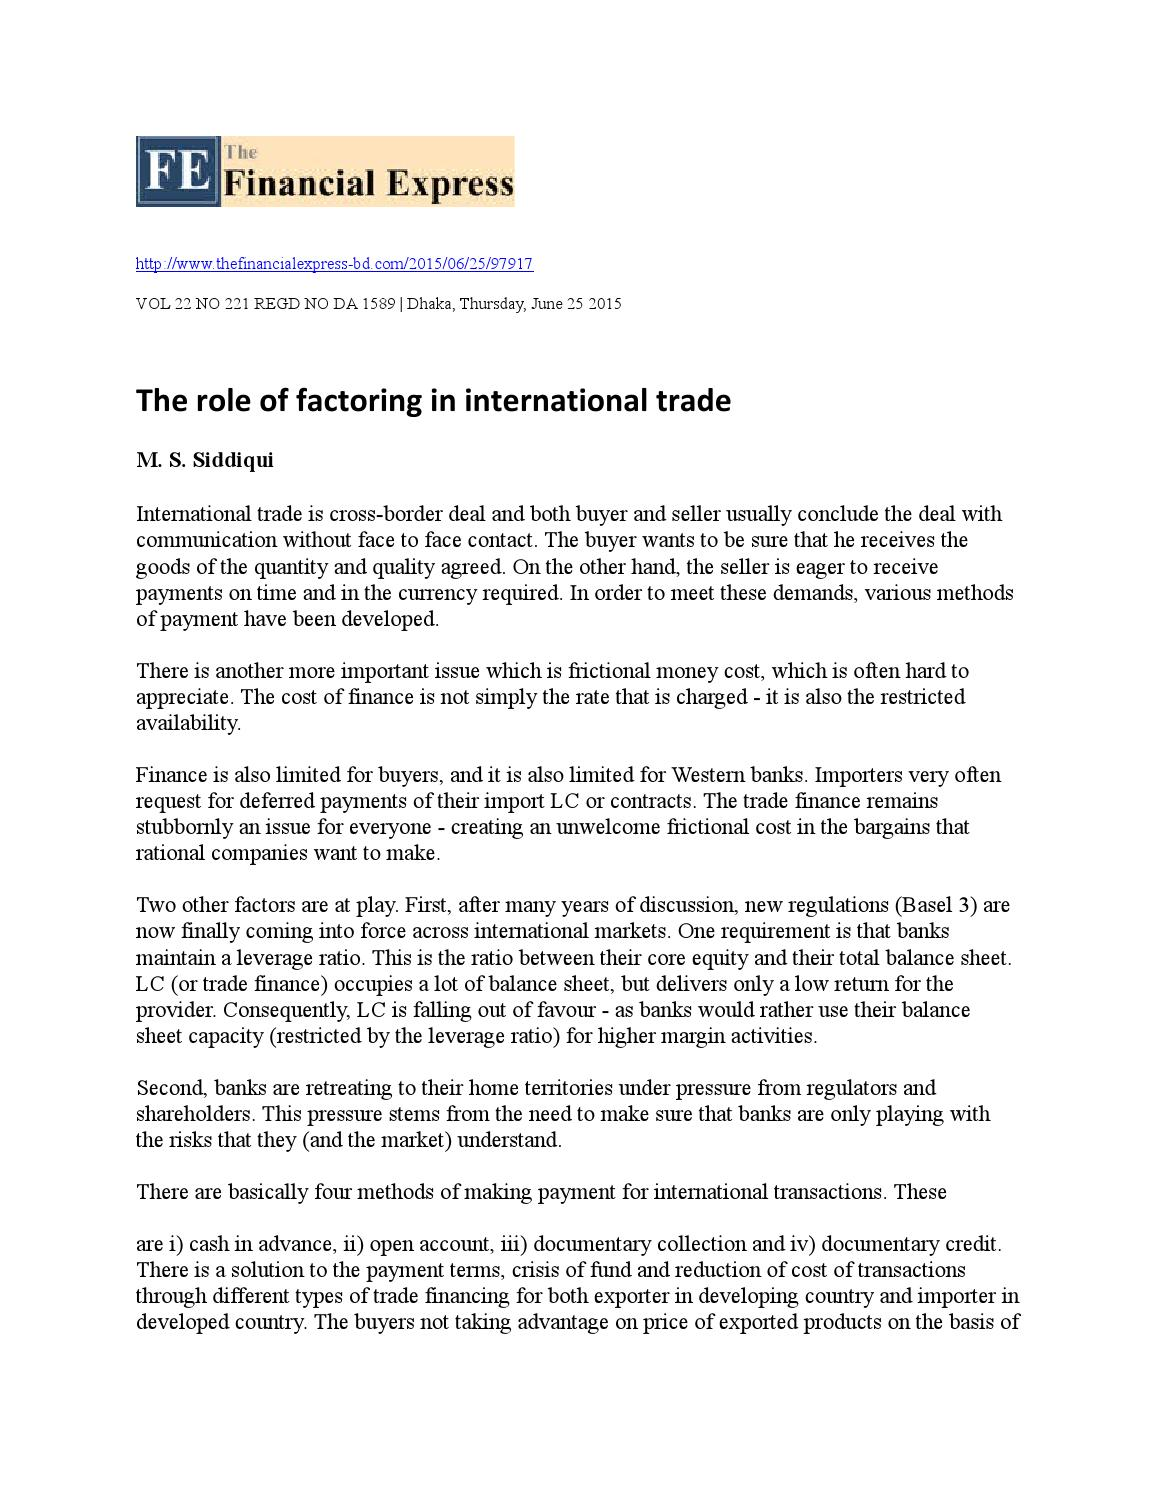 The role of factoring in international trade by Mohammad Shahjahan